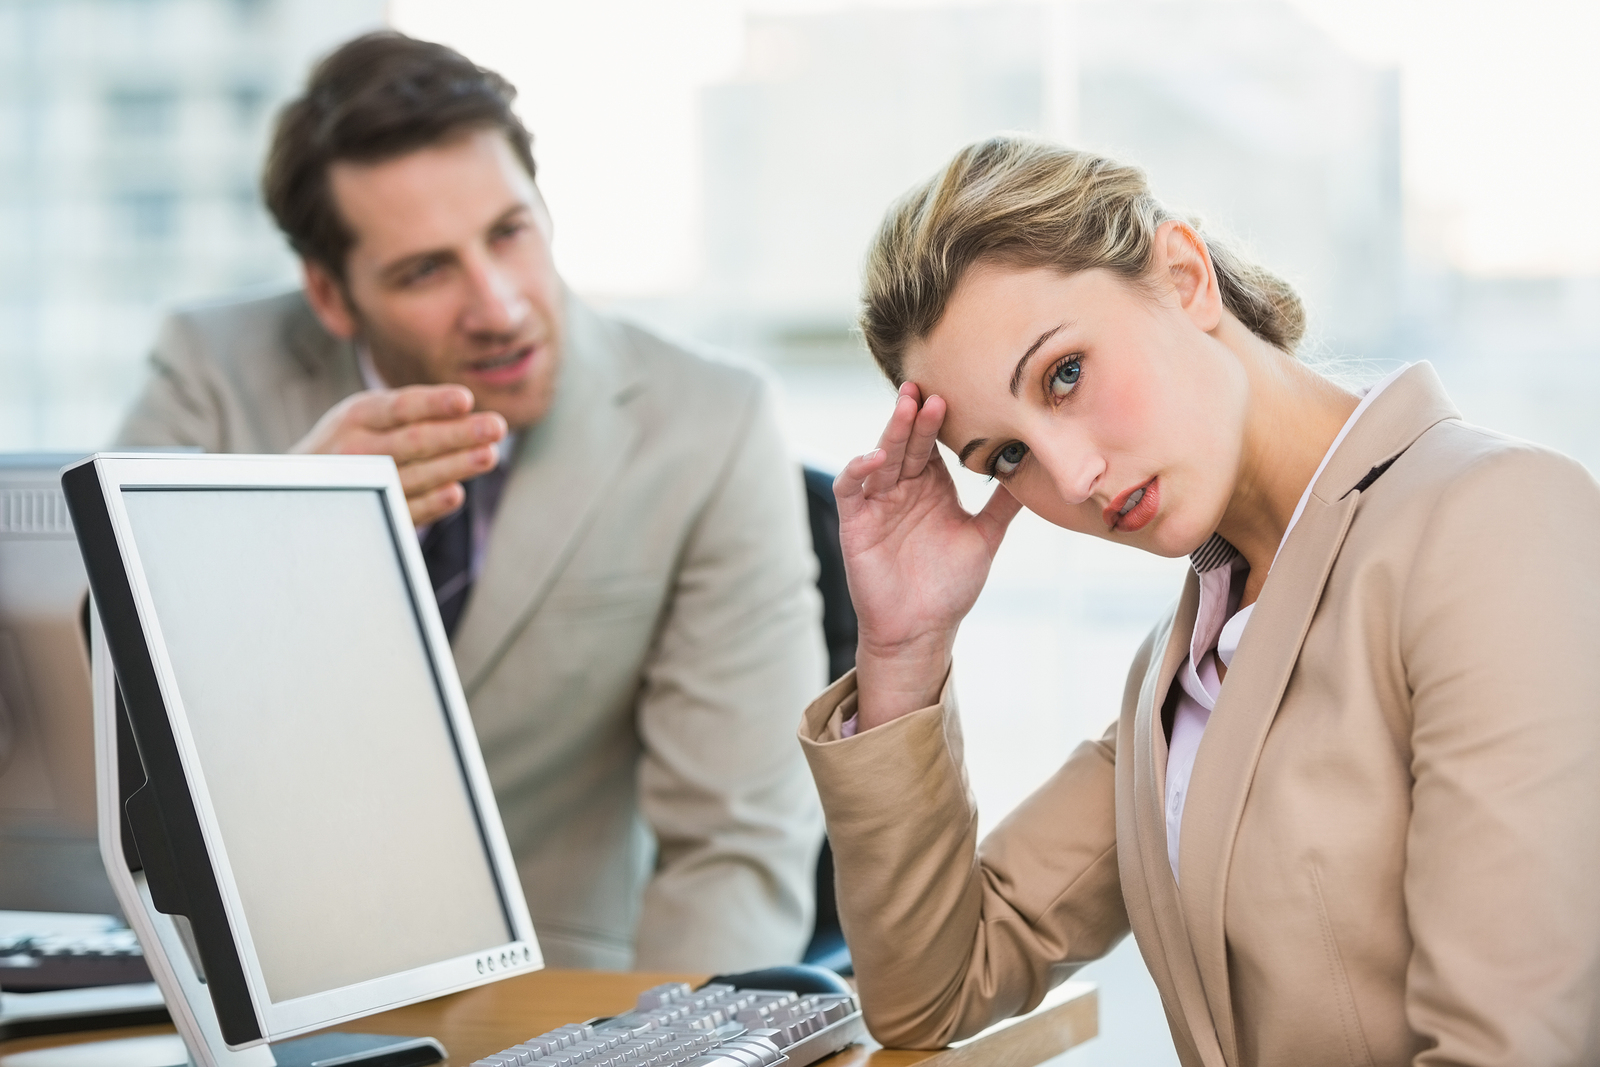 dealing with irritating co-workers